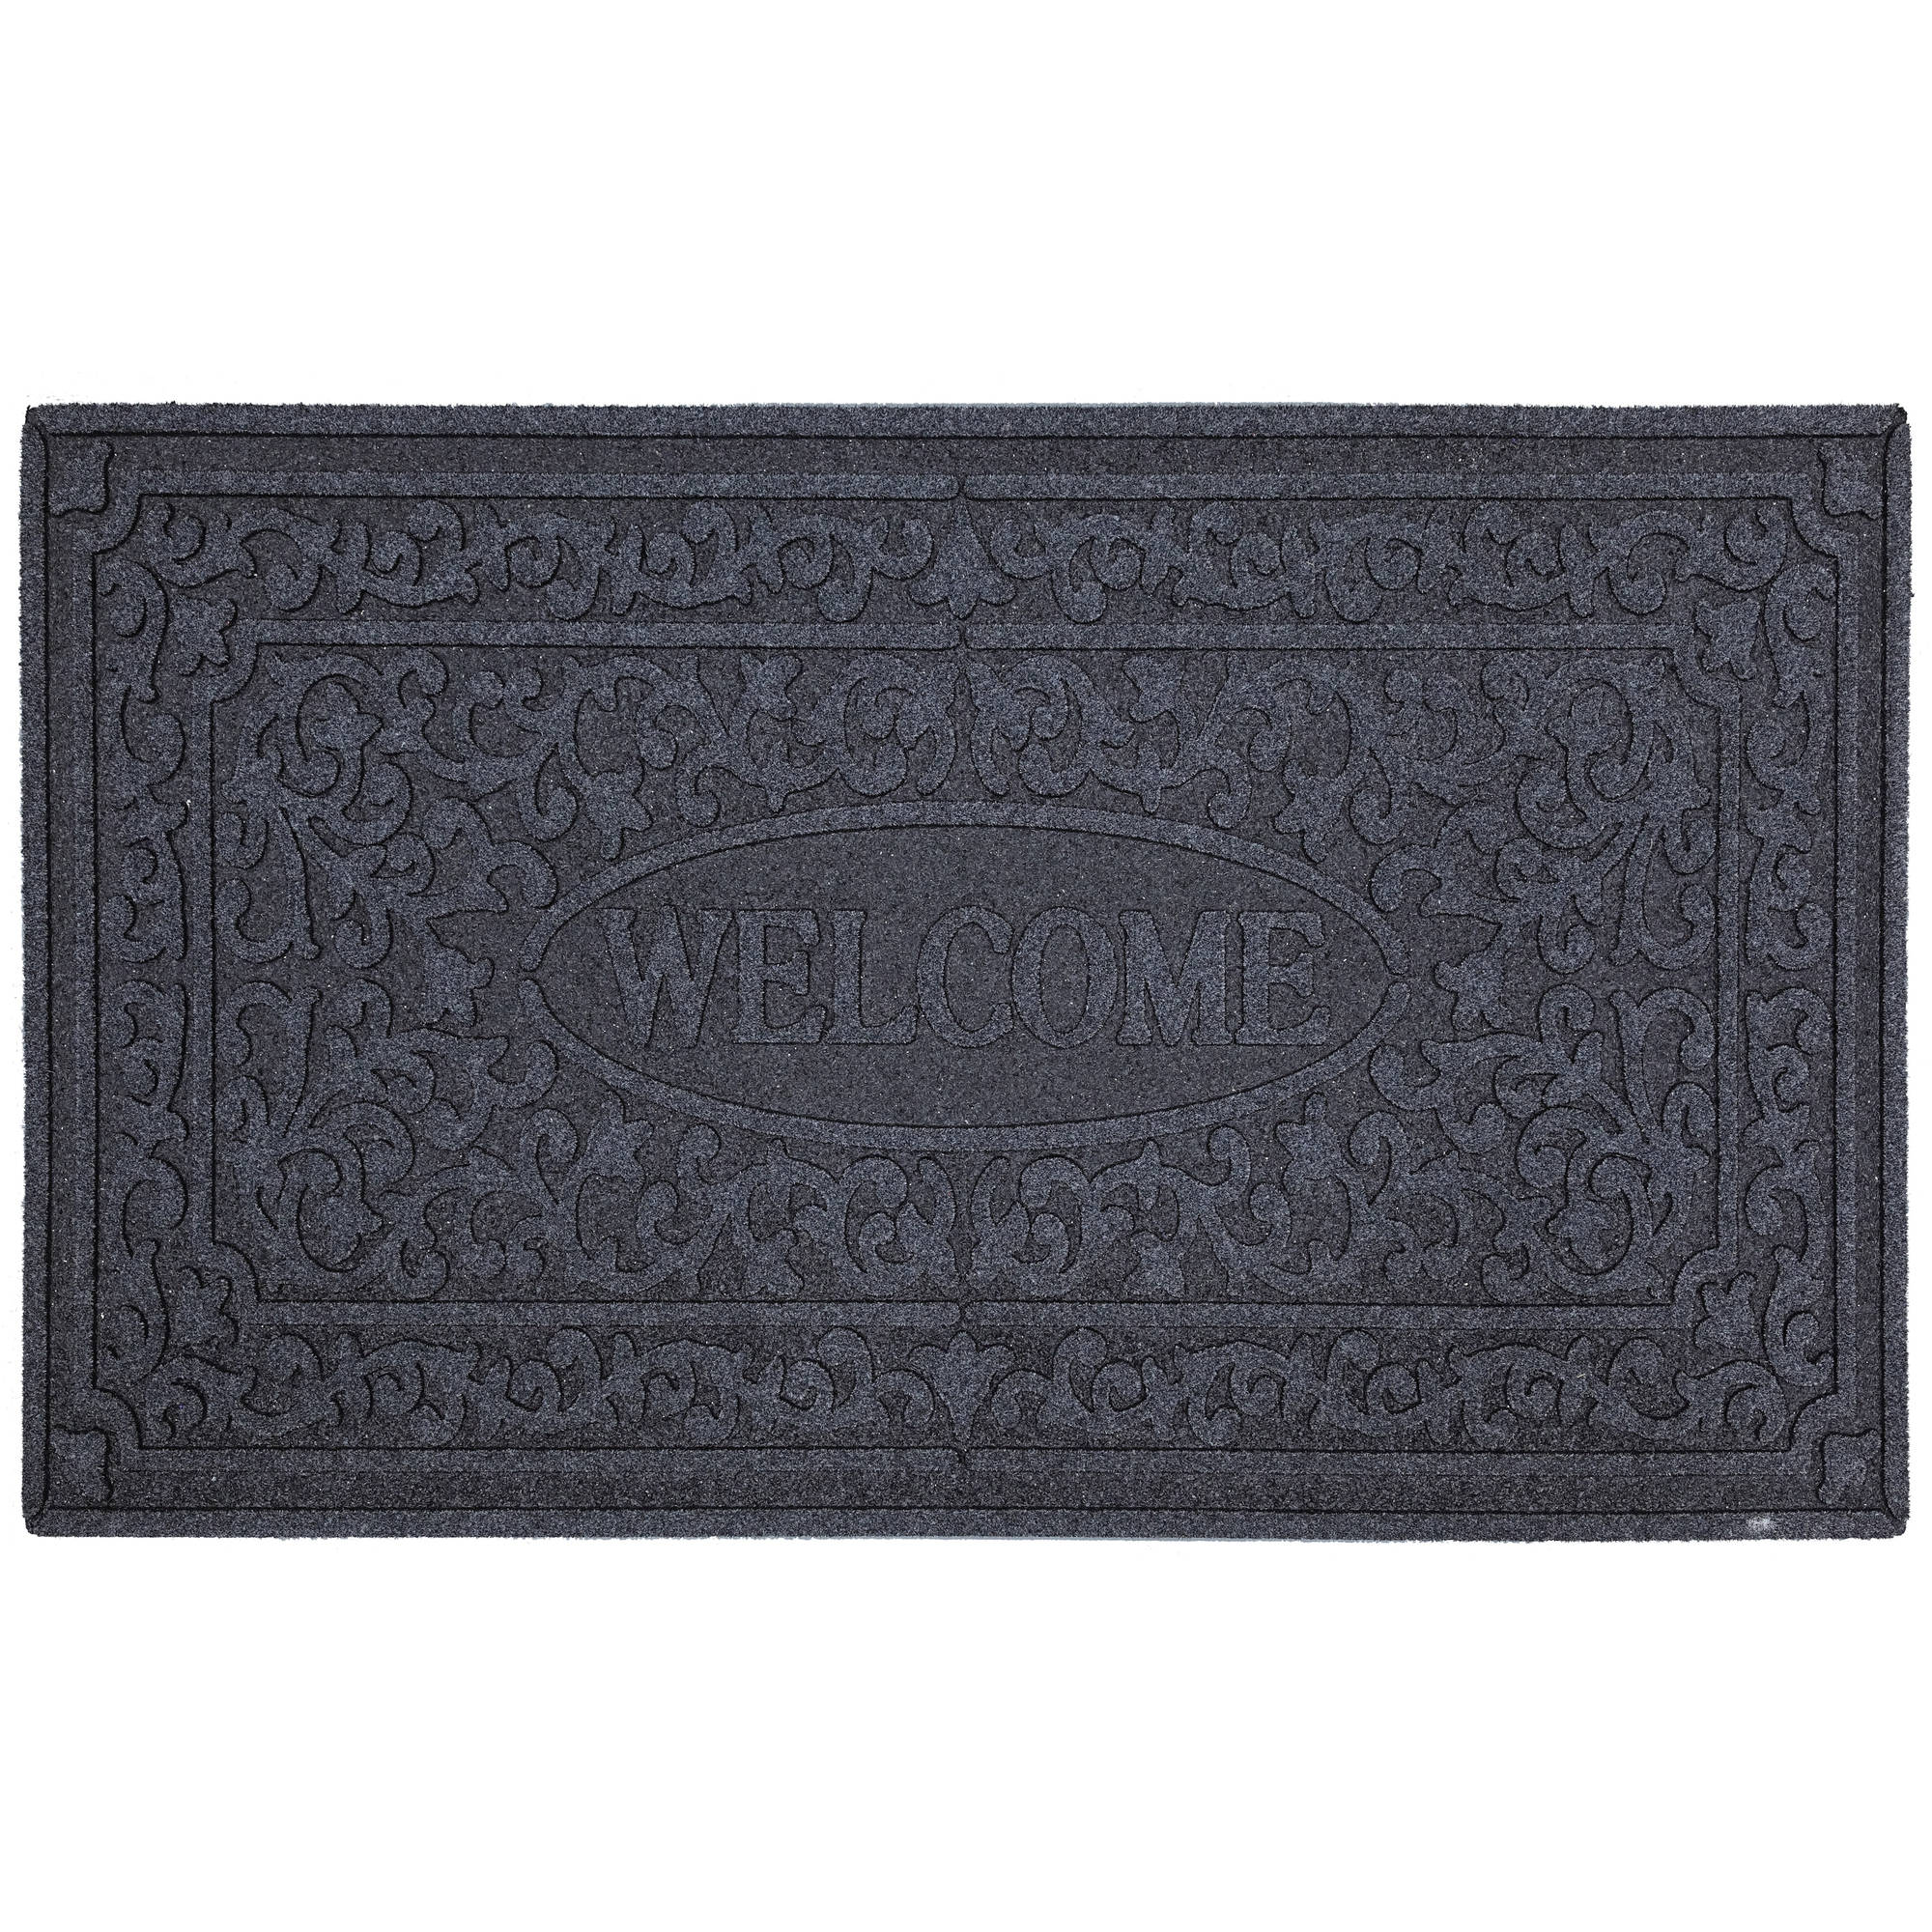 Ordinaire Mohawk Home Recycled Rubber Door Mat, St. Croix, ...